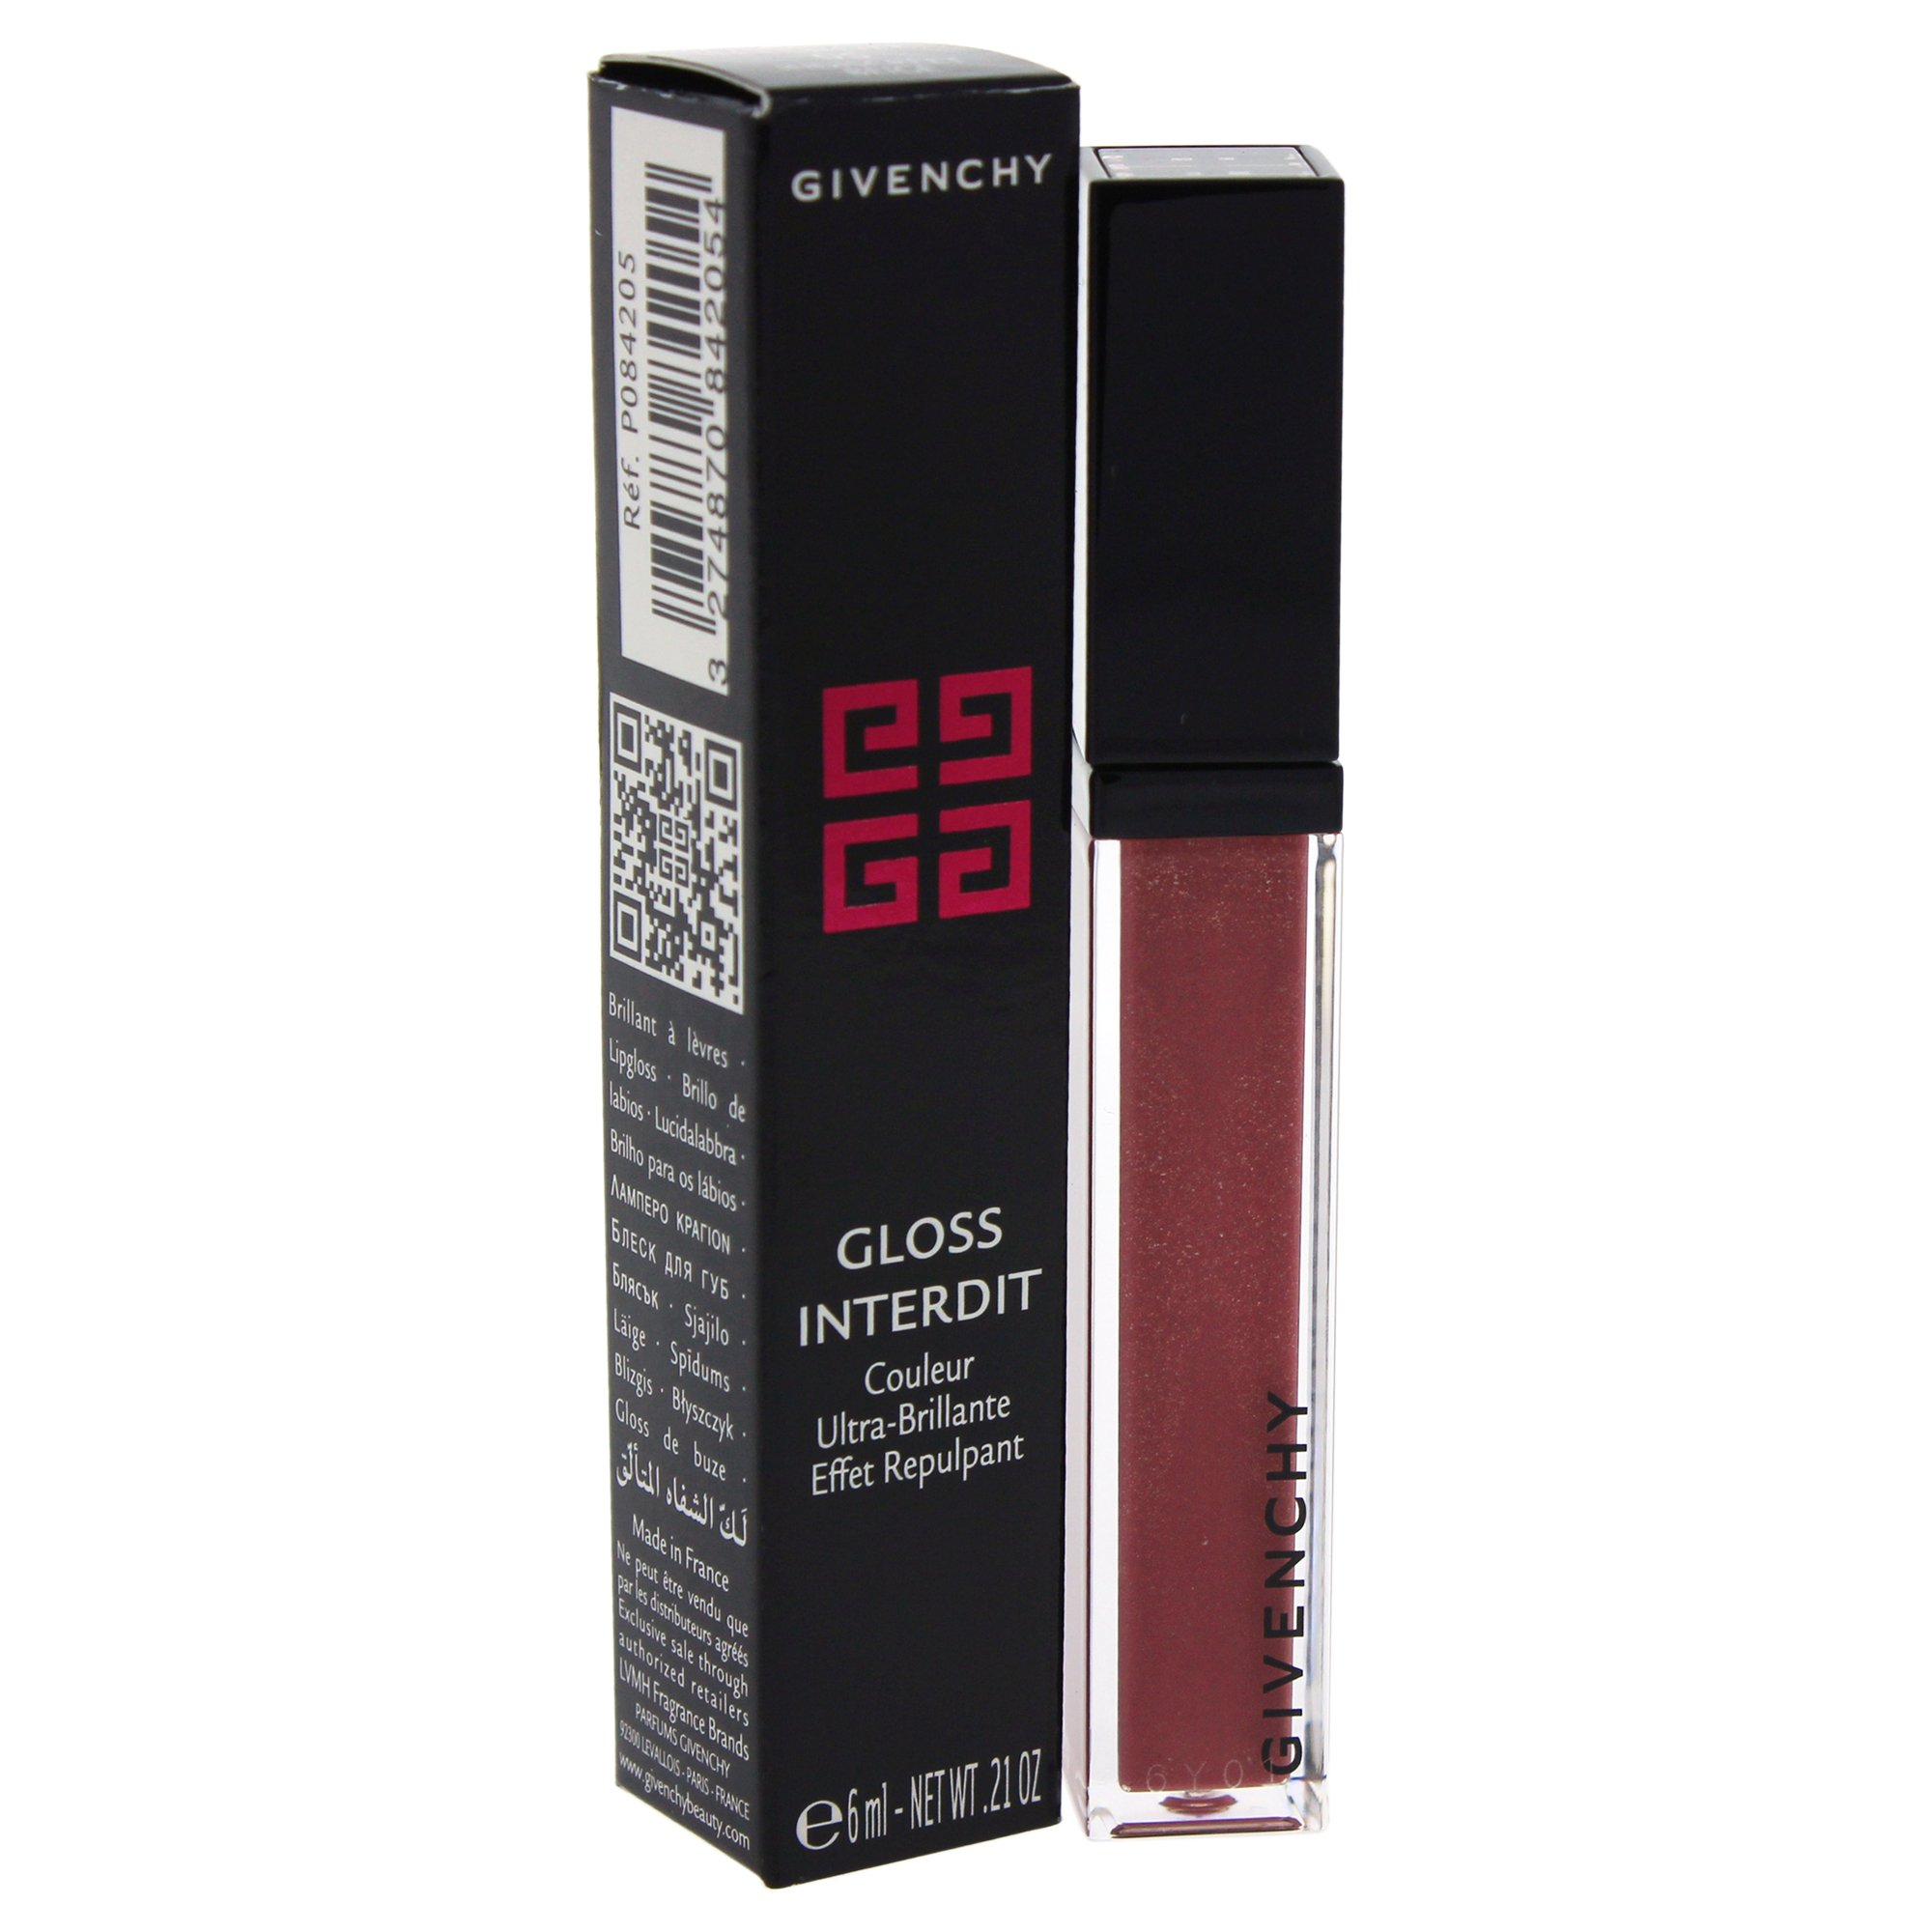 Givenchy Gloss interdit - # 05 indiscreet beige by givenchy for women - lip gloss, 0.21 Ounce